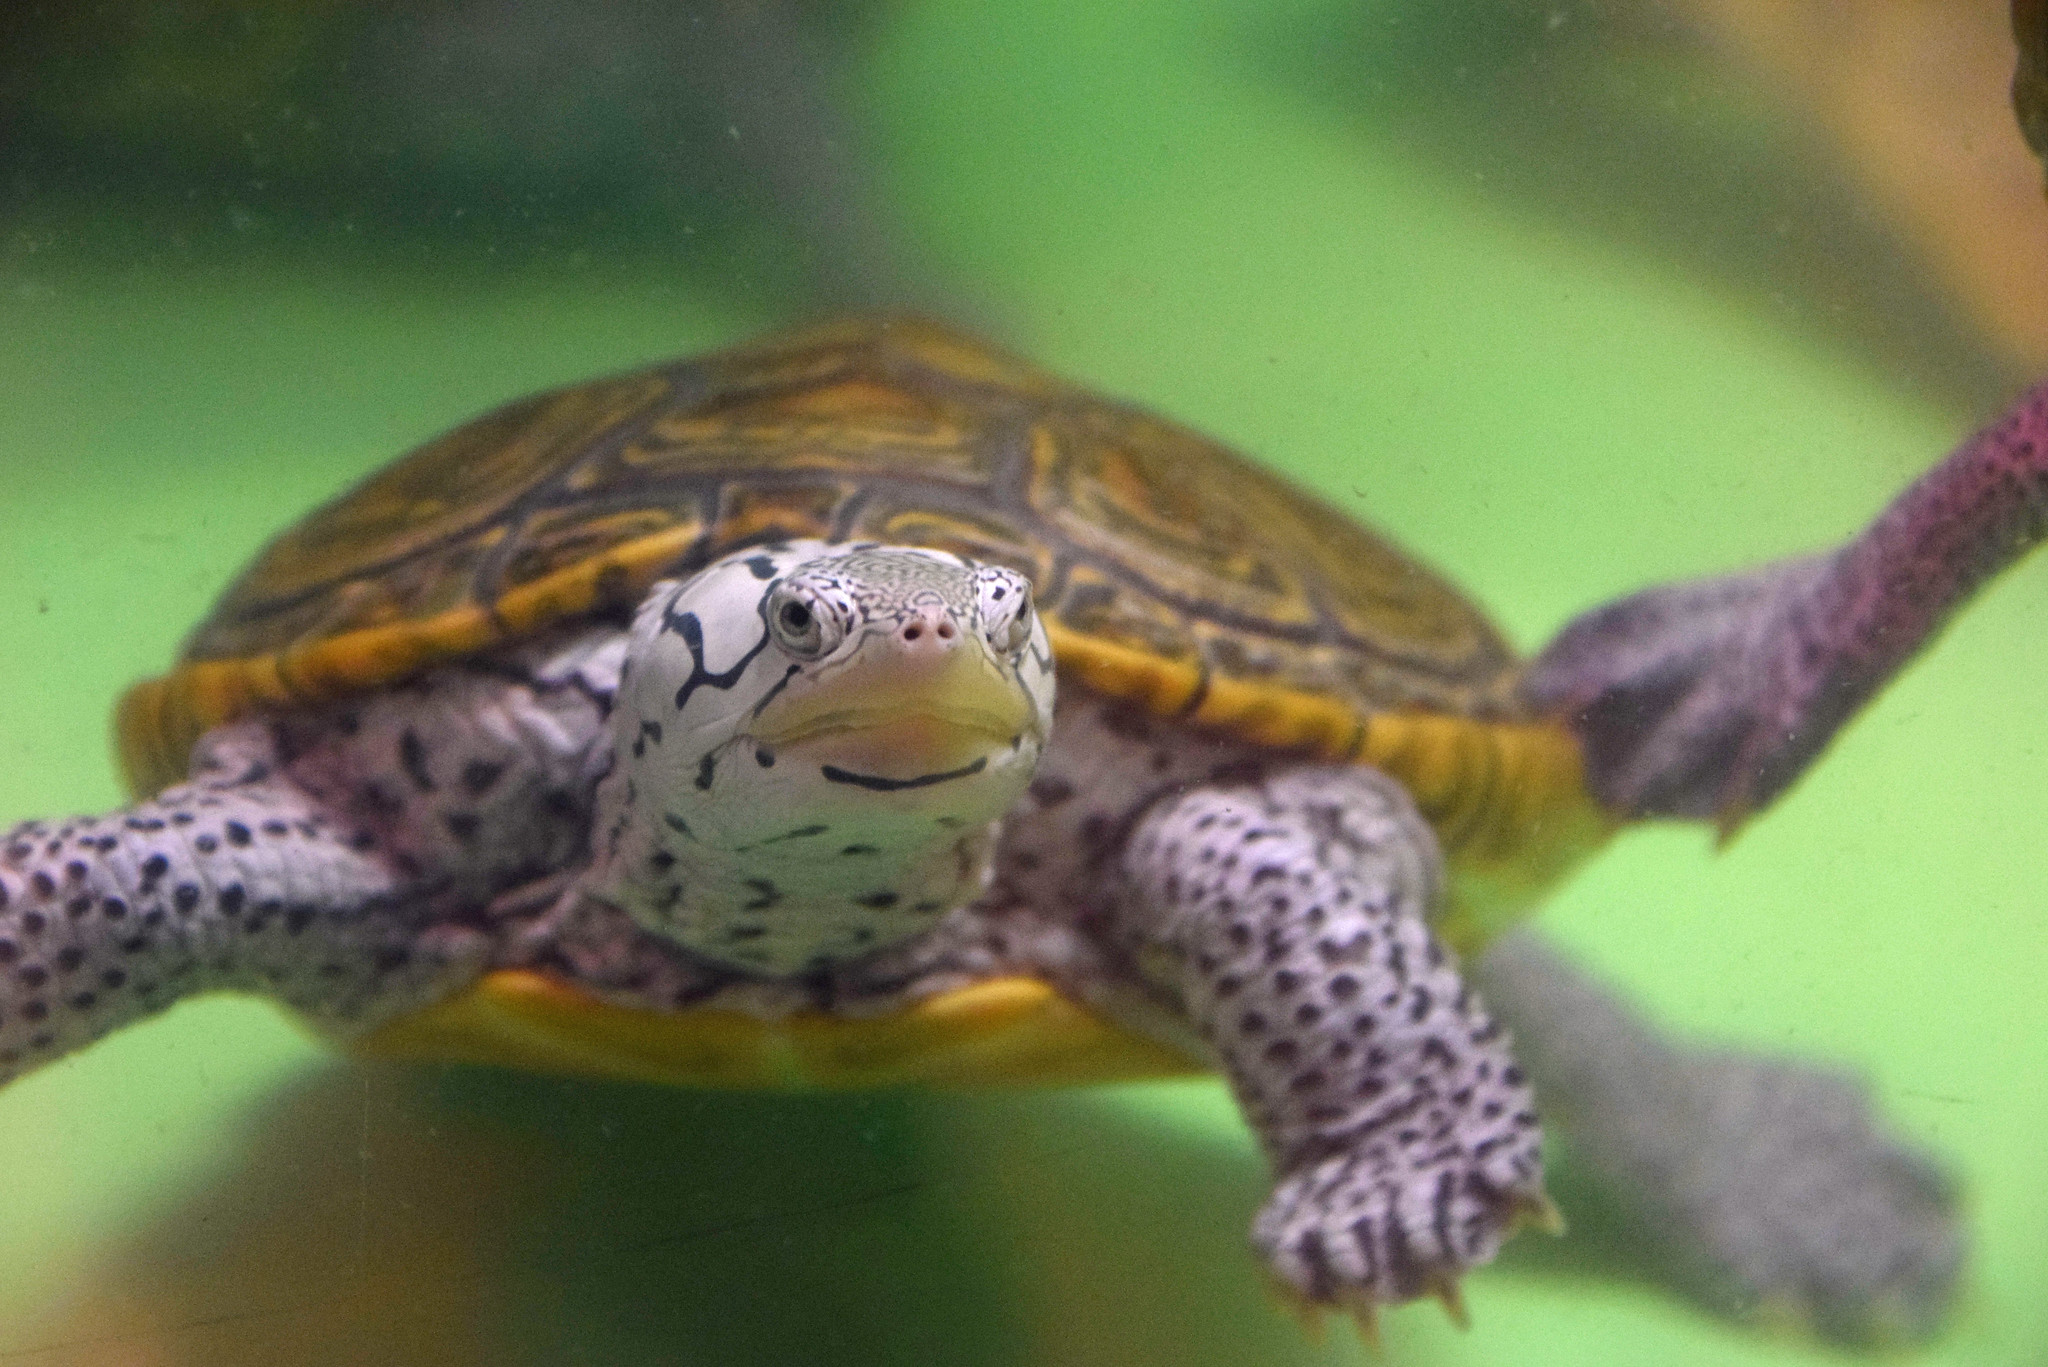 A close up photo of a Diamondback Terrapin